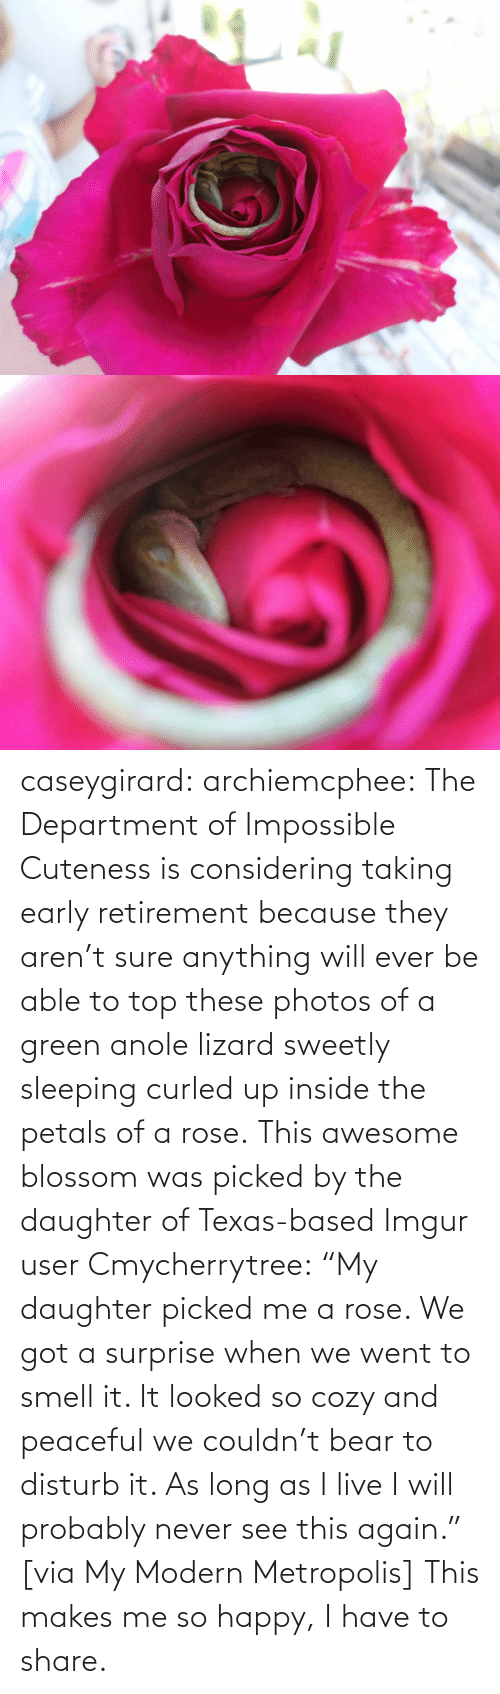 "user: caseygirard:  archiemcphee:   The Department of Impossible Cuteness is considering taking early retirement because they aren't sure anything will ever be able to top these photos of a green anole lizard sweetly sleeping curled up inside the petals of a rose. This awesome blossom was picked by the daughter of Texas-based Imgur user Cmycherrytree: ""My daughter picked me a rose. We got a surprise when we went to smell it. It looked so cozy and peaceful we couldn't bear to disturb it. As long as I live I will probably never see this again."" [via My Modern Metropolis]   This makes me so happy, I have to share."